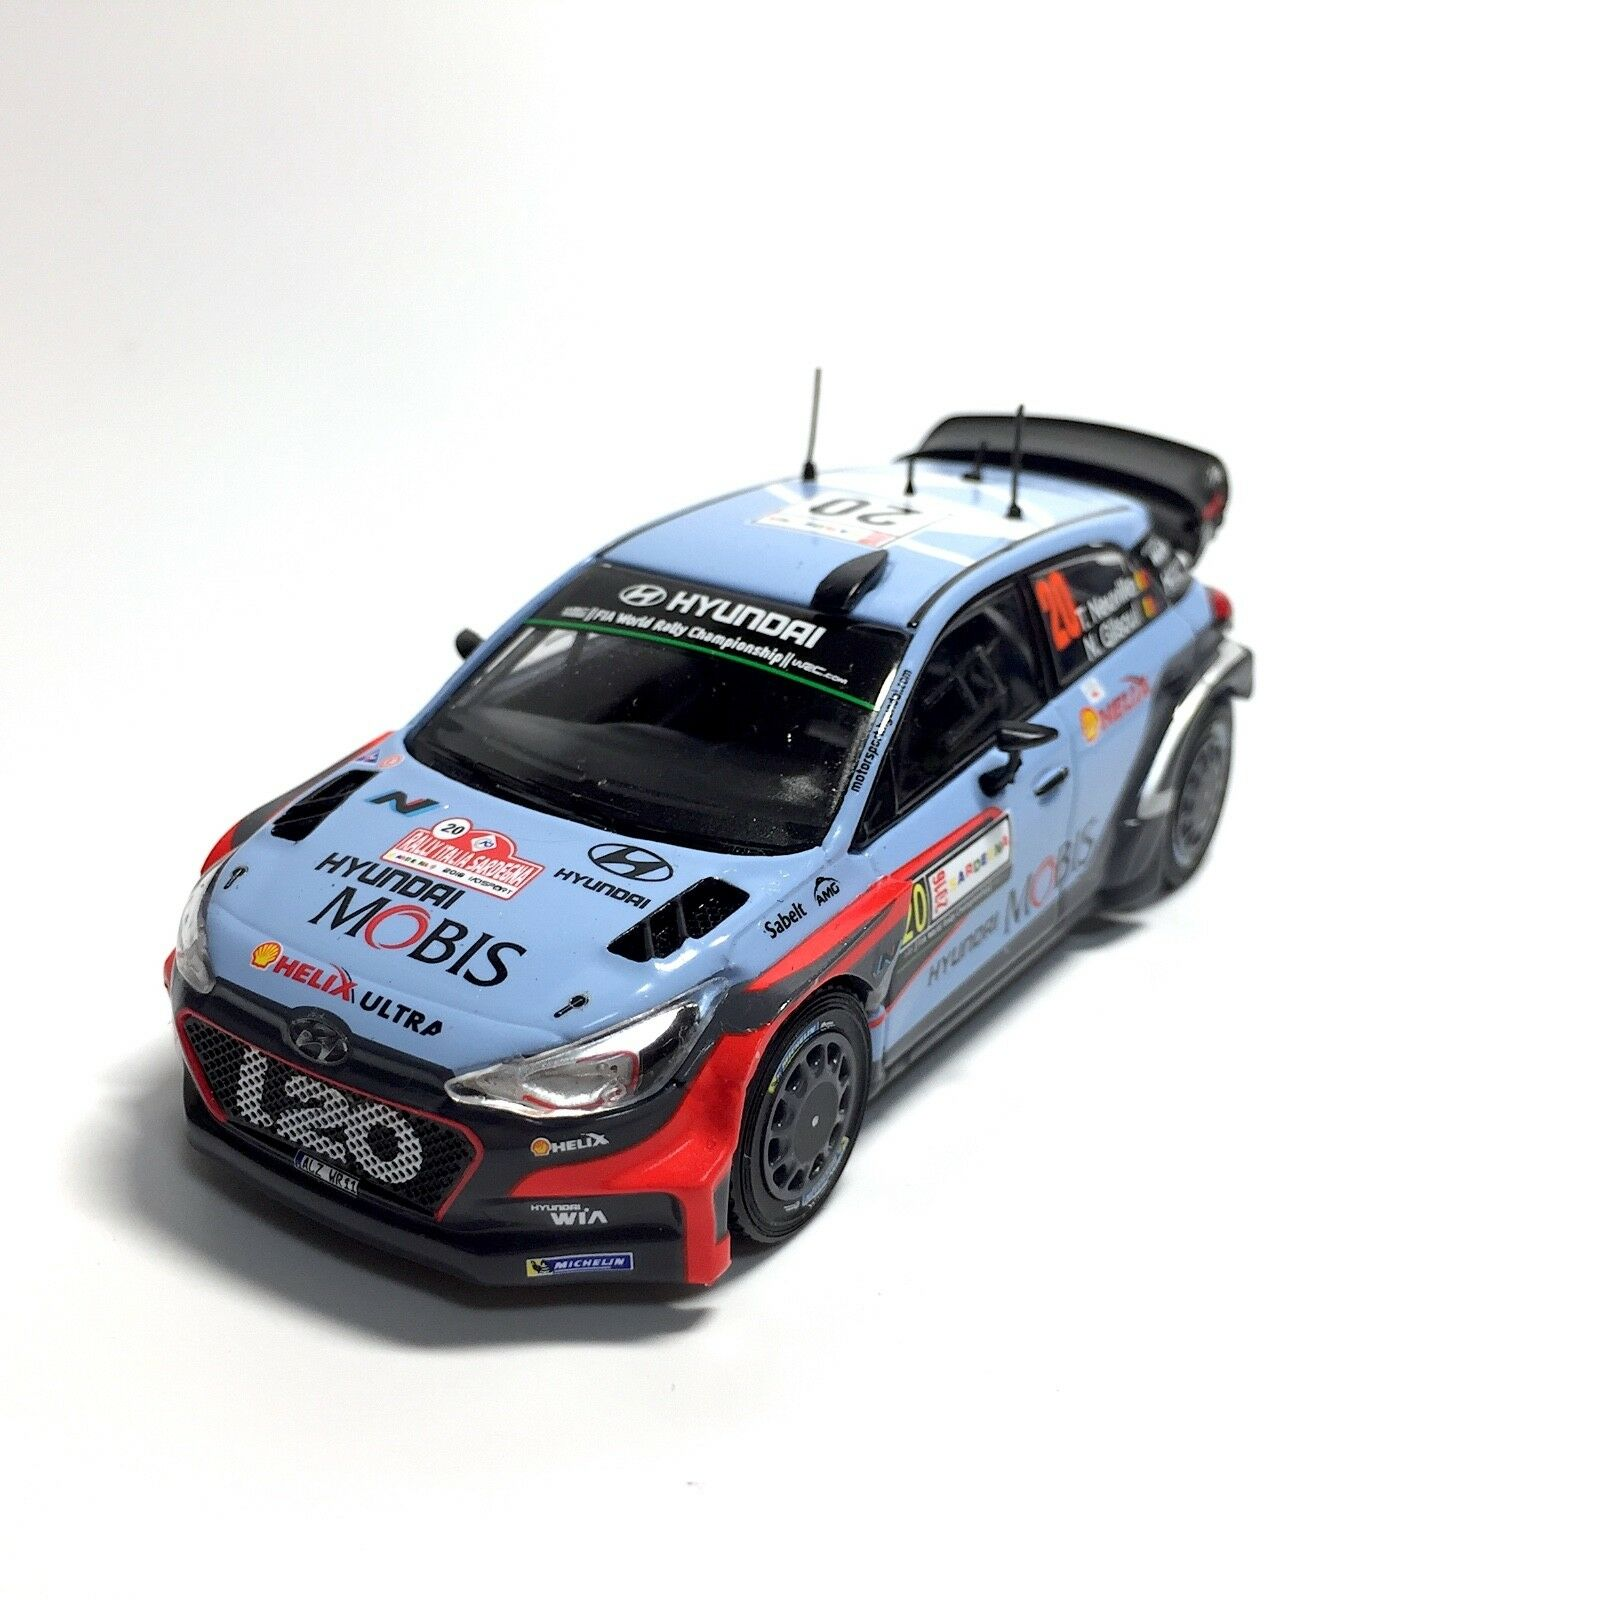 hyundai i20 coupe wrc 1 43 rally winner italy 2016 thierry neuville picclick ca. Black Bedroom Furniture Sets. Home Design Ideas